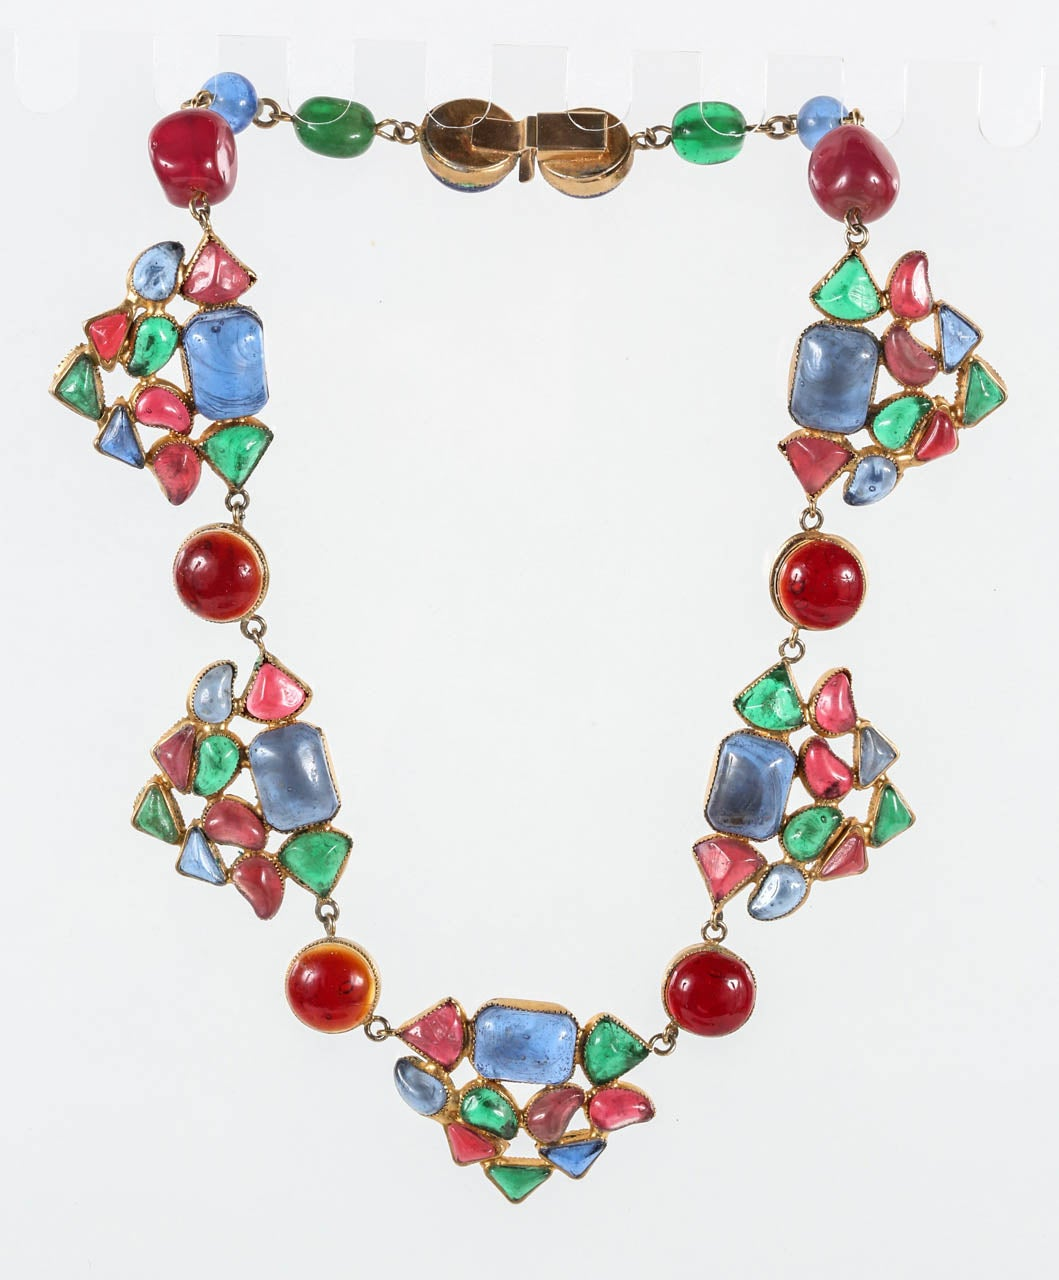 Beautiful & Colorful Gripoix Necklace attributed to Chanel 2